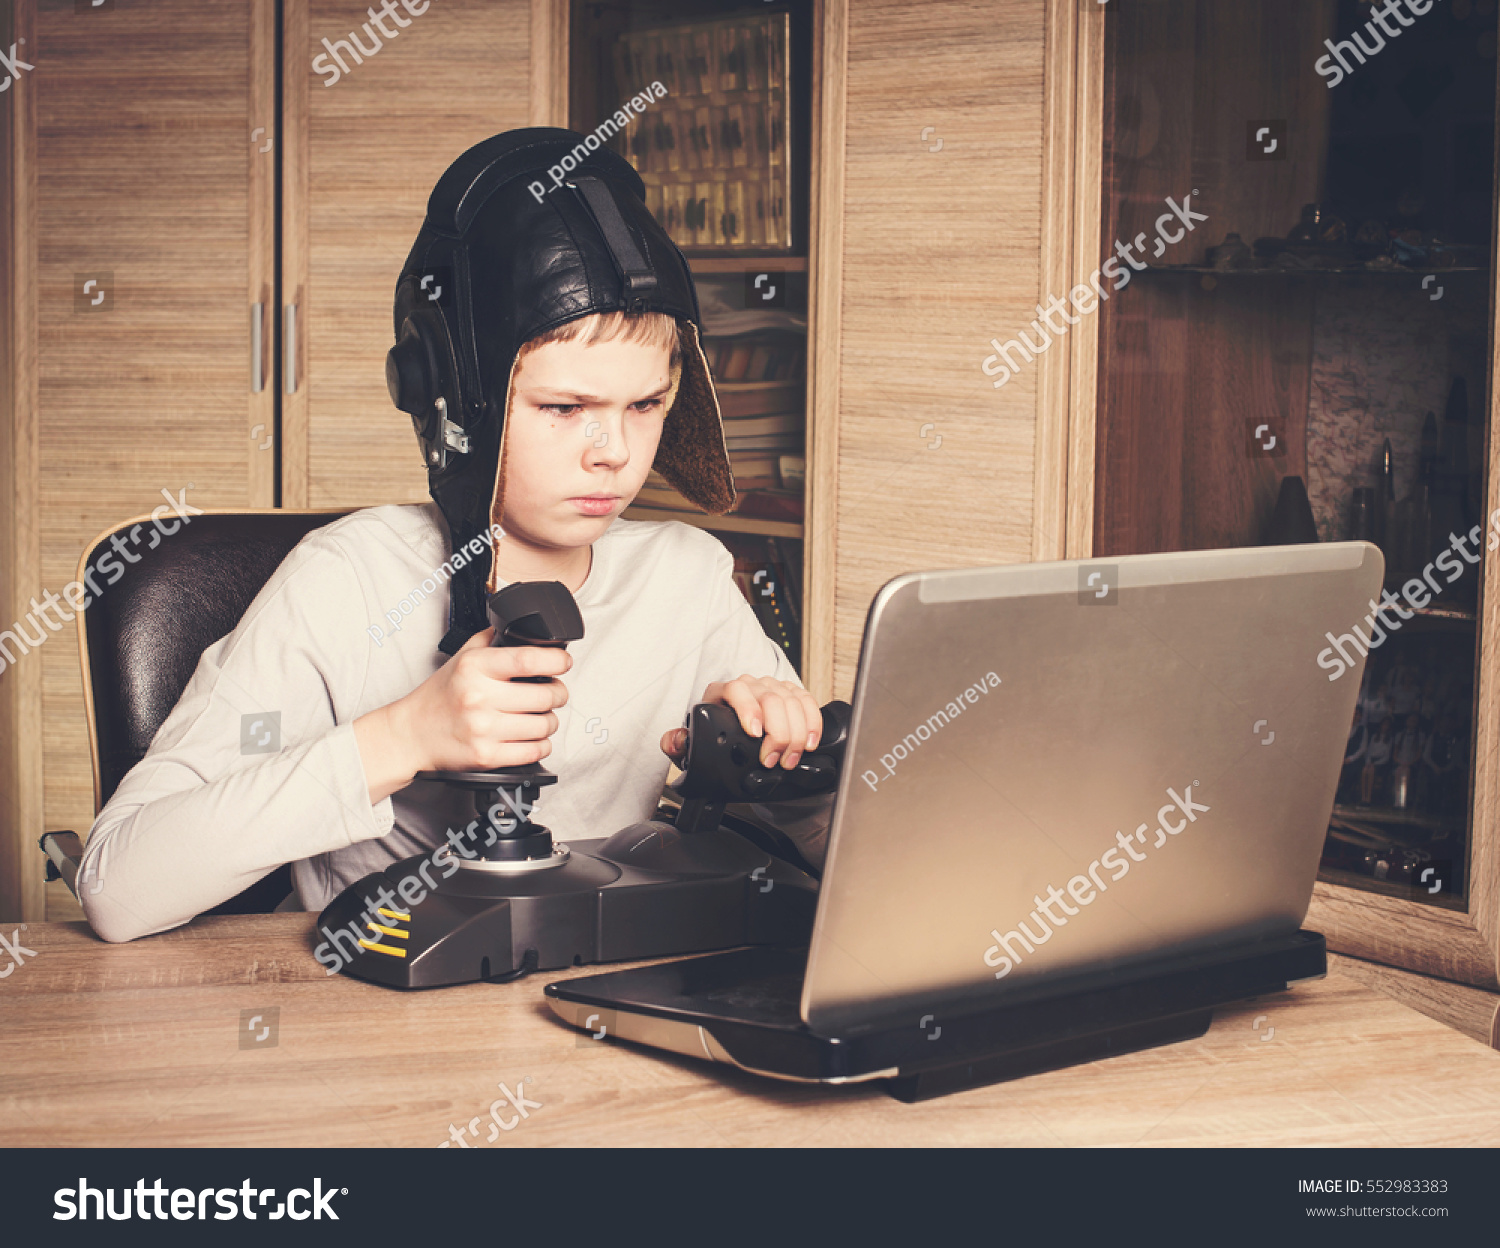 Kid Playing Online Pc Game Emotional Stock Photo (Edit Now) 552983383